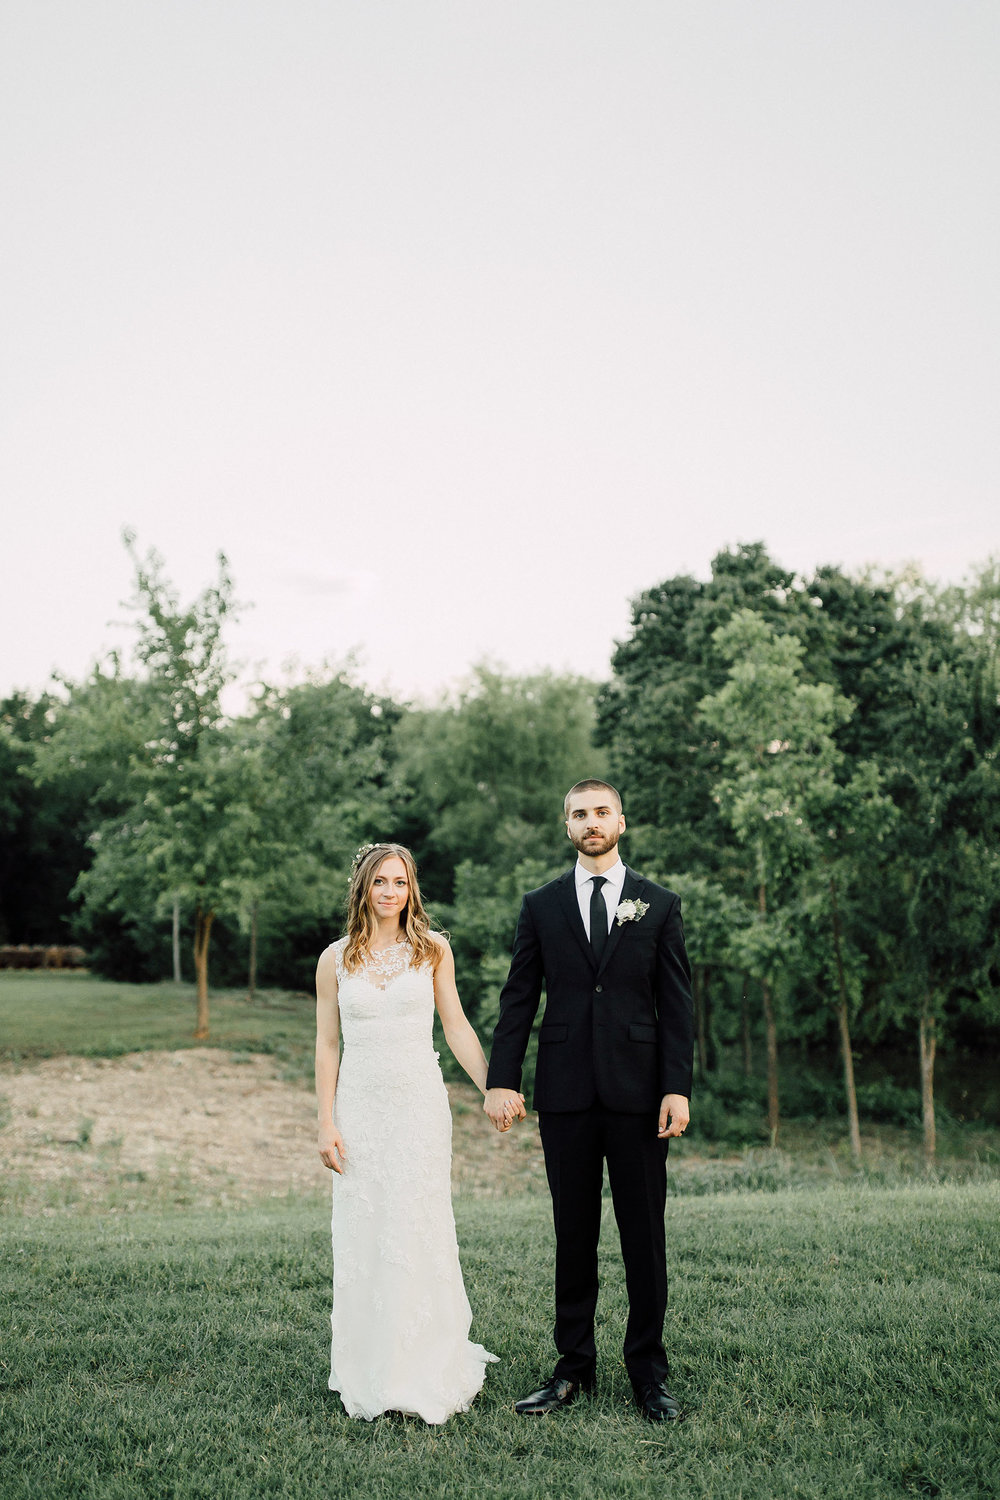 Mr+Mrs Nechamkin-997.jpg